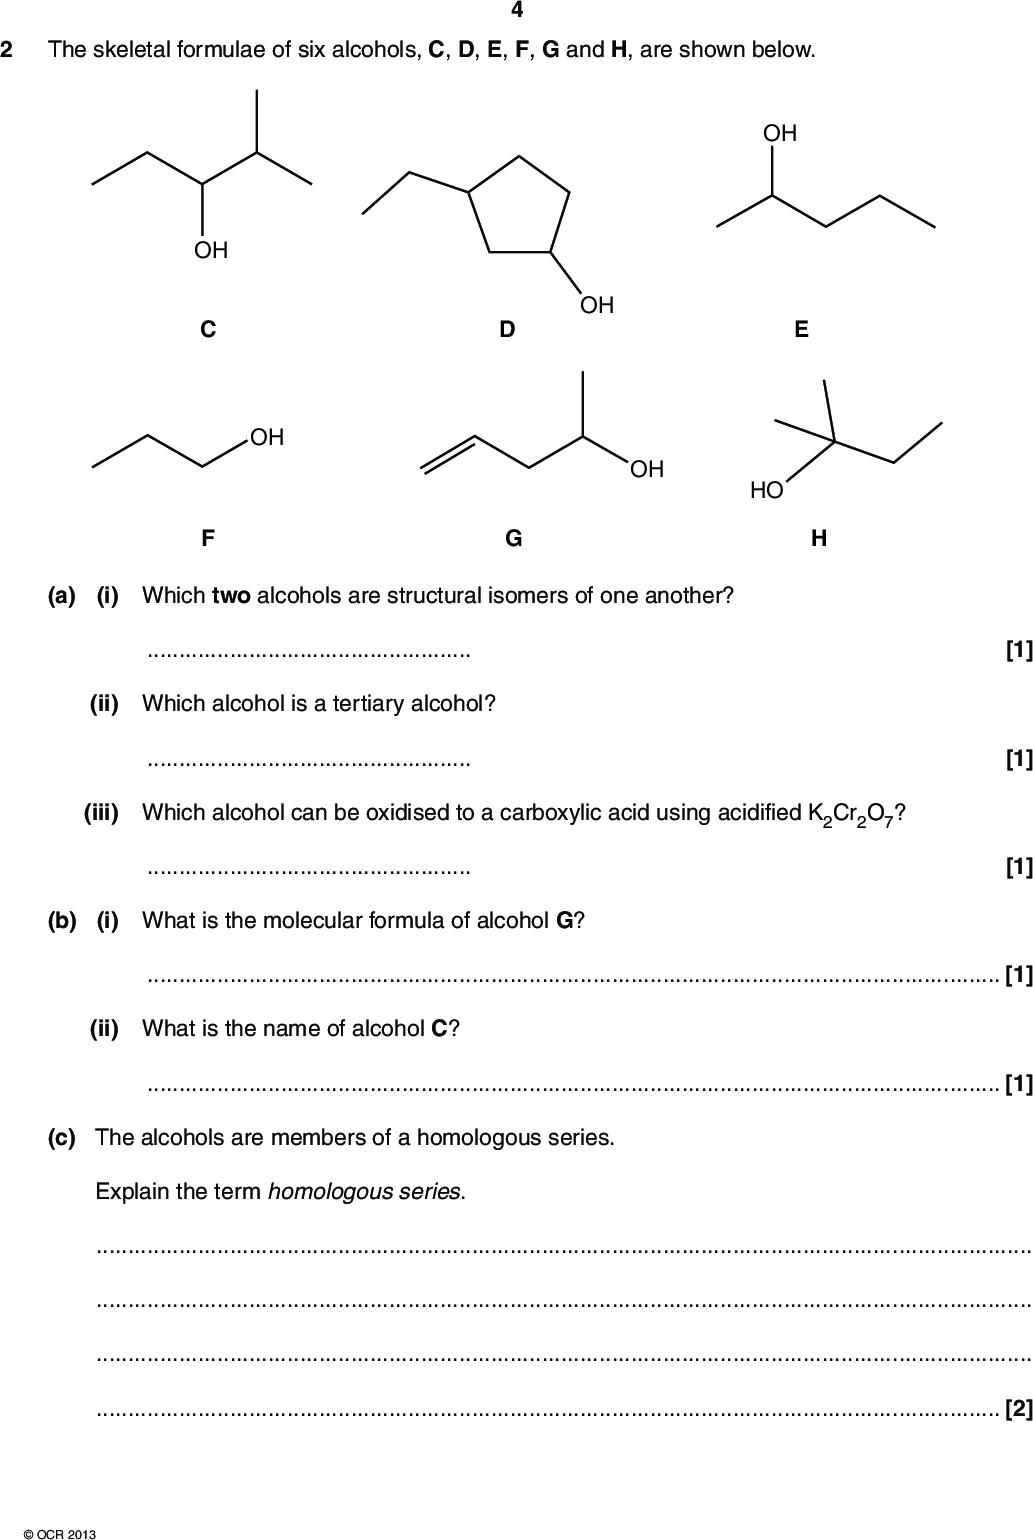 The skeletal formulae of six alcohols, C, D, E, F, G and H, are shown below. OH OH OH HO OH OH (a) (i) Which two alcohols are structural isomers of one another?(ii) Which alcohol is a tertiary alcohol?(iii) Which alcohol can be oxidised to a carboxylic acid using acidified K2Cr2O7?(b) (i) What is the molecular formula of alcohol G? [1] [1] [1][1] (ii) What is the name of alcohol C?[1] (c) The alcohols are members of a homologous series. Explain the term homologous series.[2]OCR 2013<br />  (d) Alcohol D is reacted with three different reagents. Complete the flowchart below to show the organic product(s) formed in each of the reactions of alcohol D. heat with acidified K2Cr2O7(aq) heat with CH3COOH and an acid catalyst OH heat with an acid catalyst [4] [Total: 11]OCR 2013 Turn over<br />